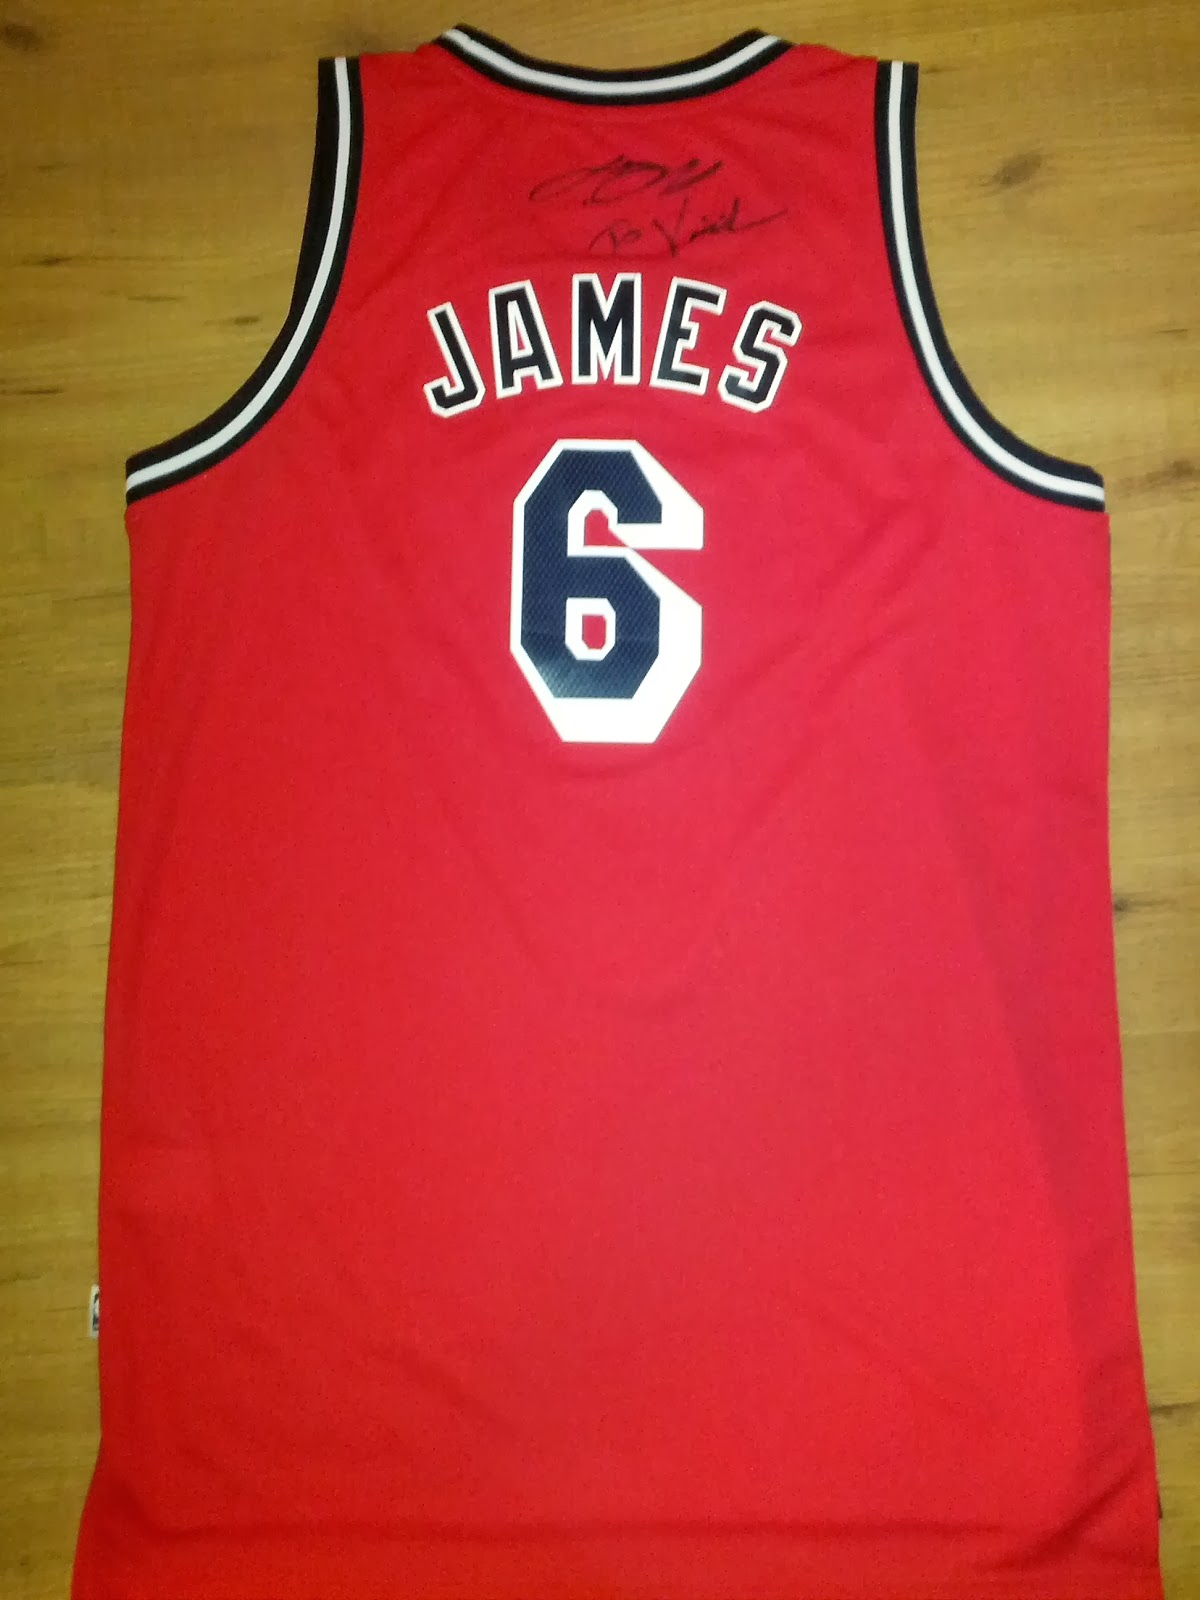 "LeBron James Signed Jersey with Dedication ""To Valerio"" - Miami Heat Hardwood Classics 1995-1999"